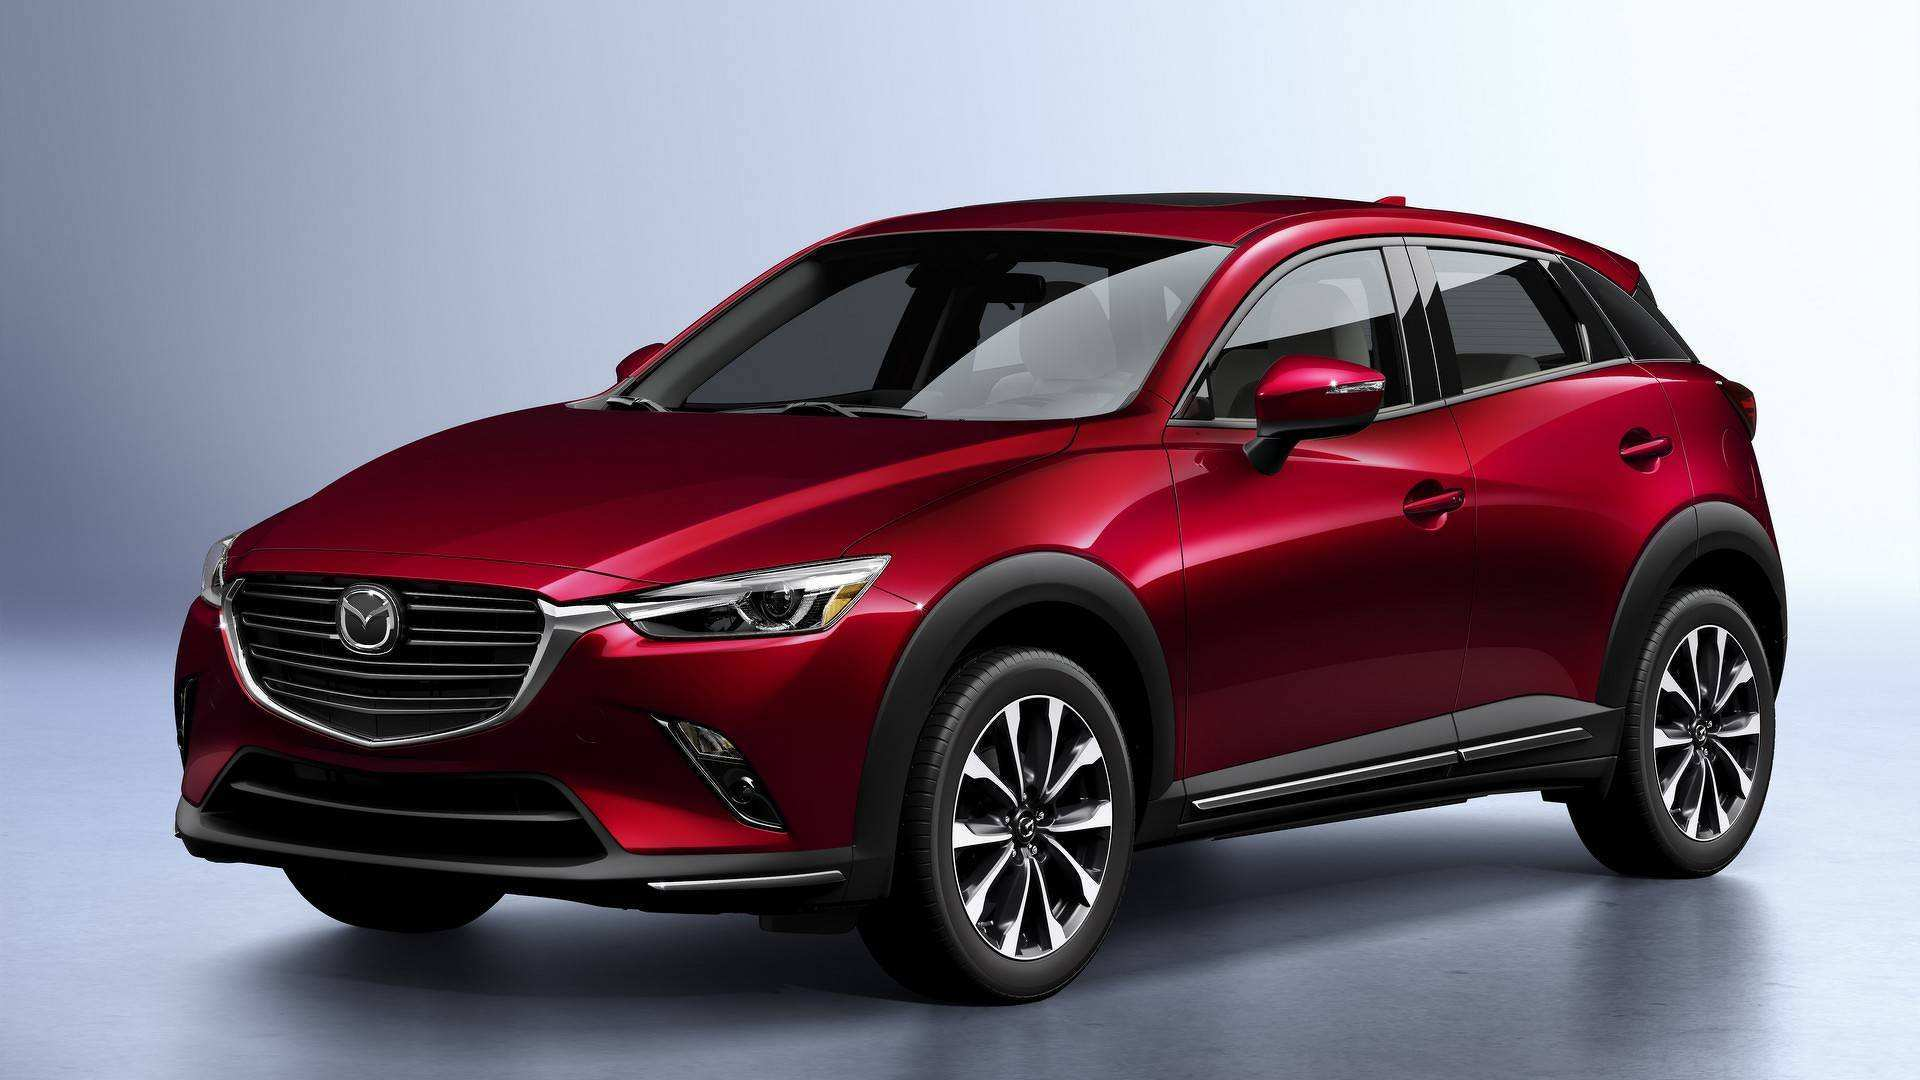 72 Great Mazda Cx 3 2020 Interior Rumors with Mazda Cx 3 2020 Interior